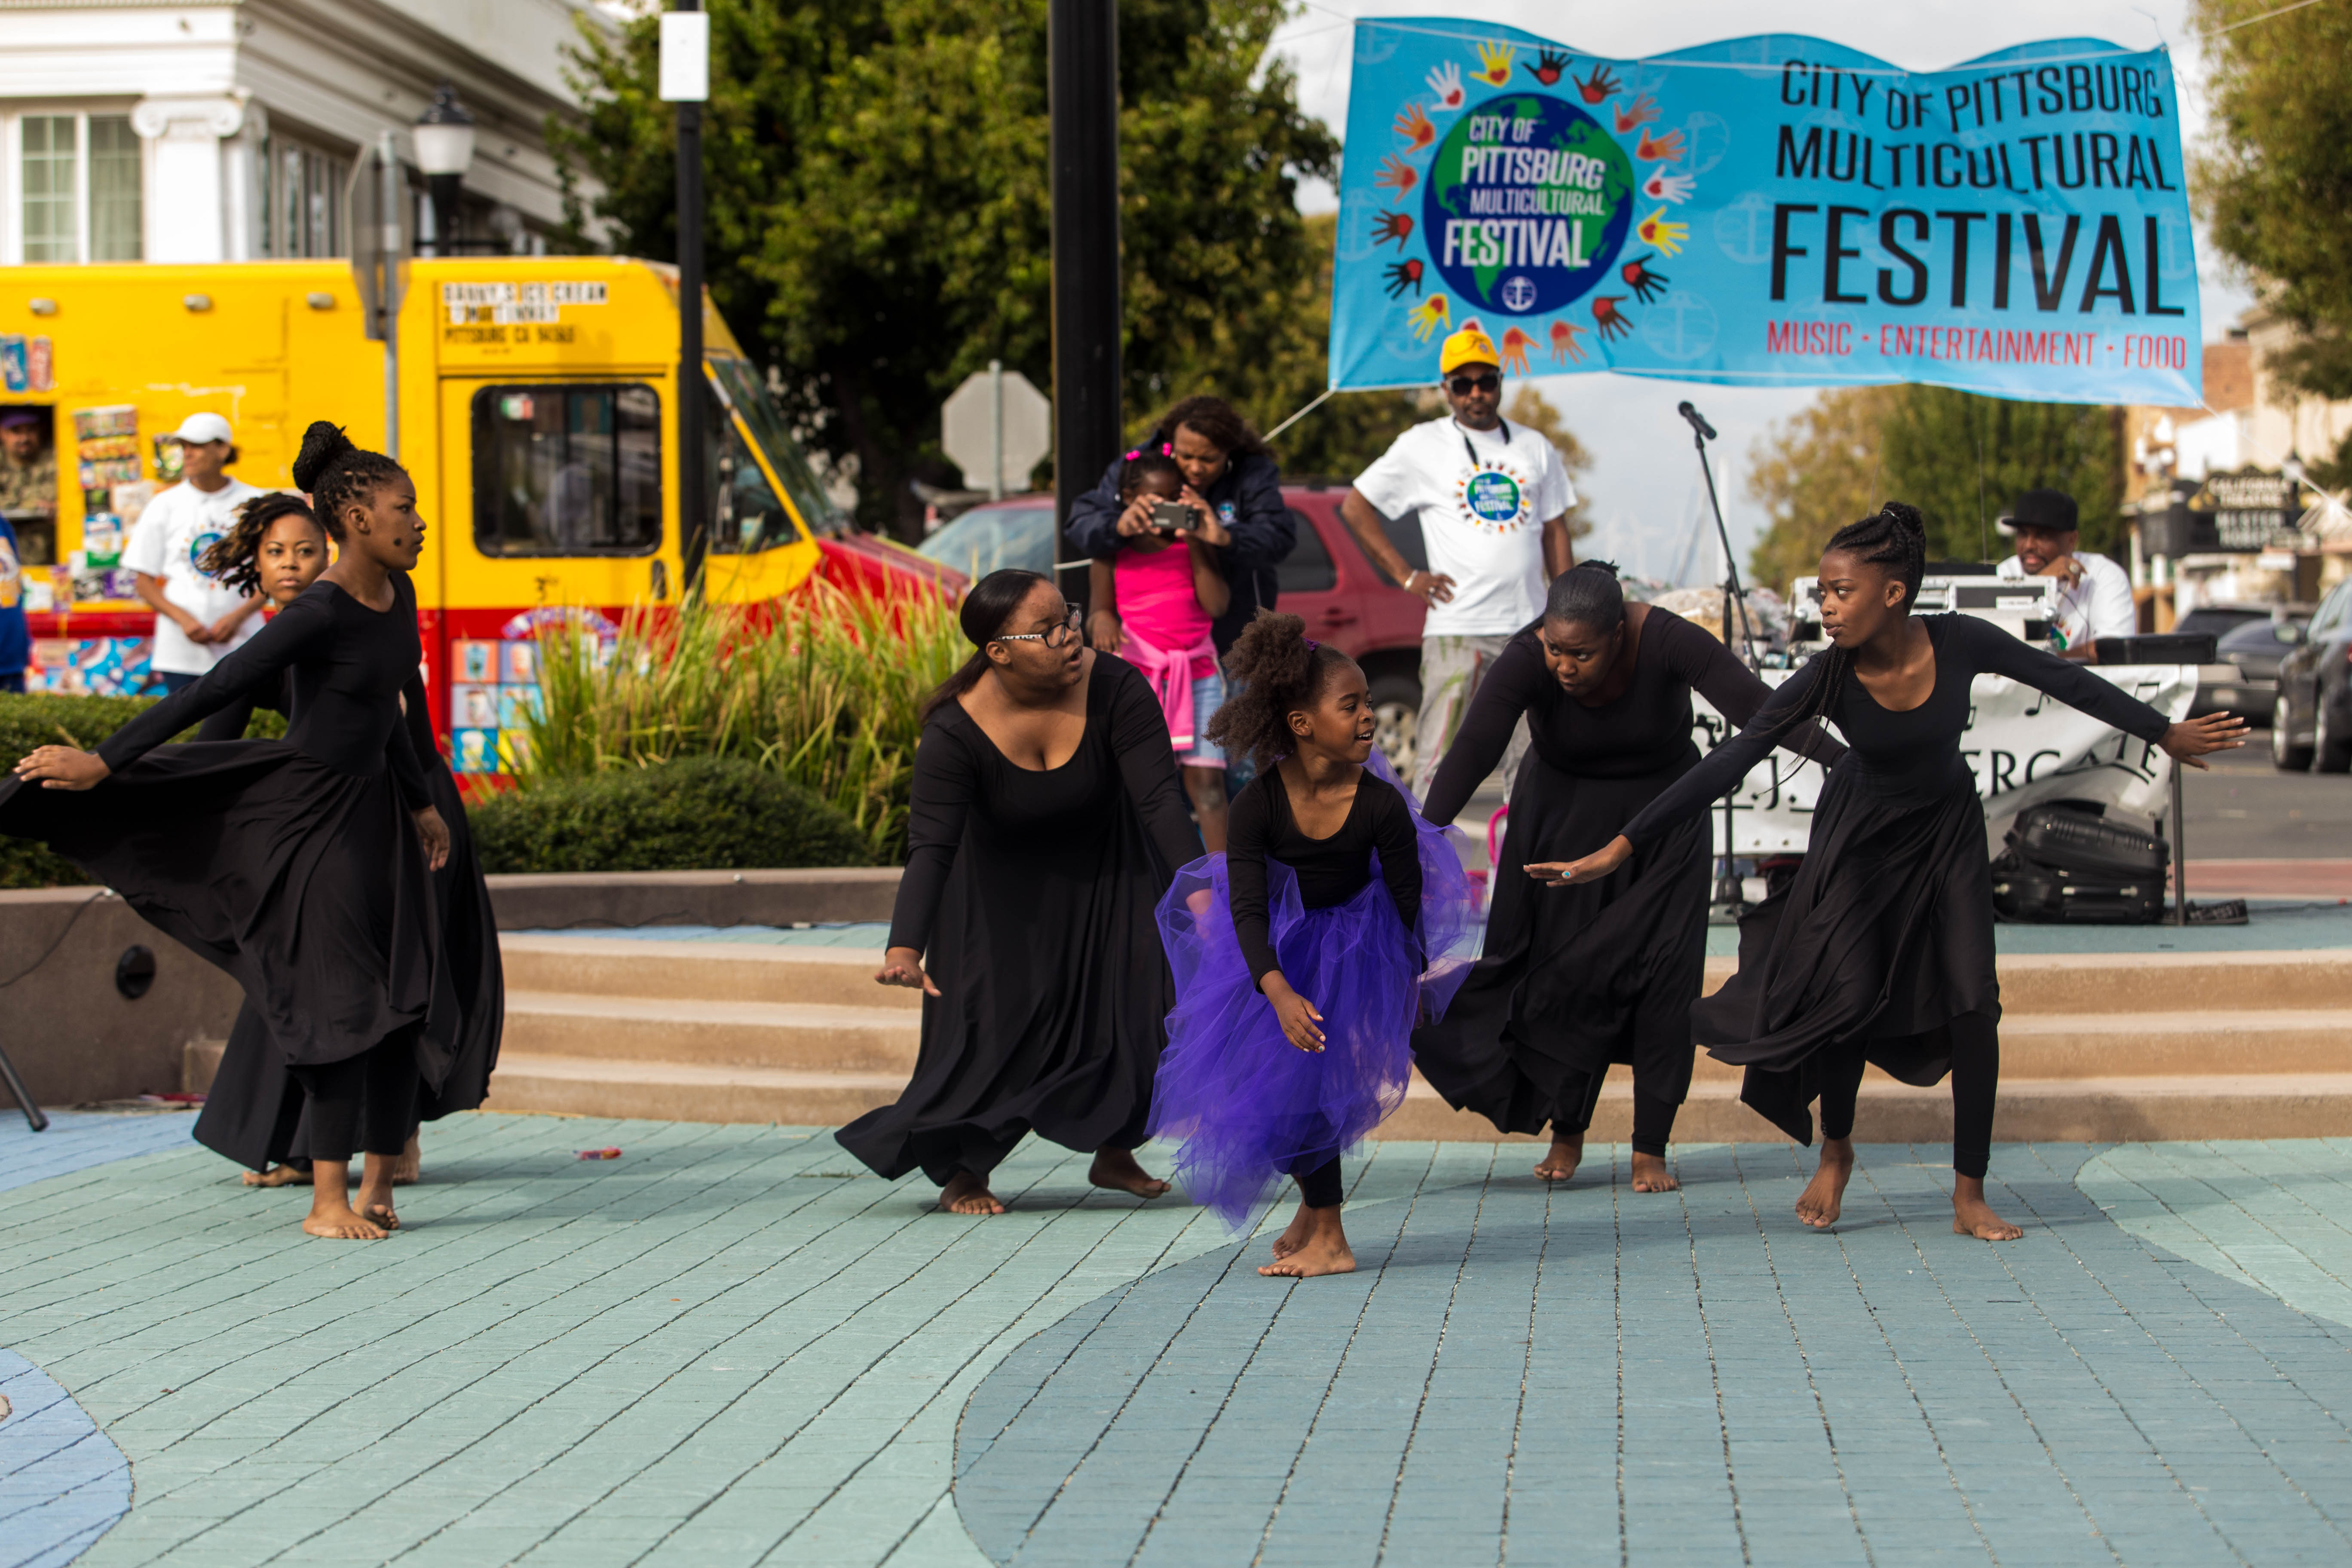 CITY_PITTSBURG_MULTICULTURAL_OCTOBER_2016 (755)